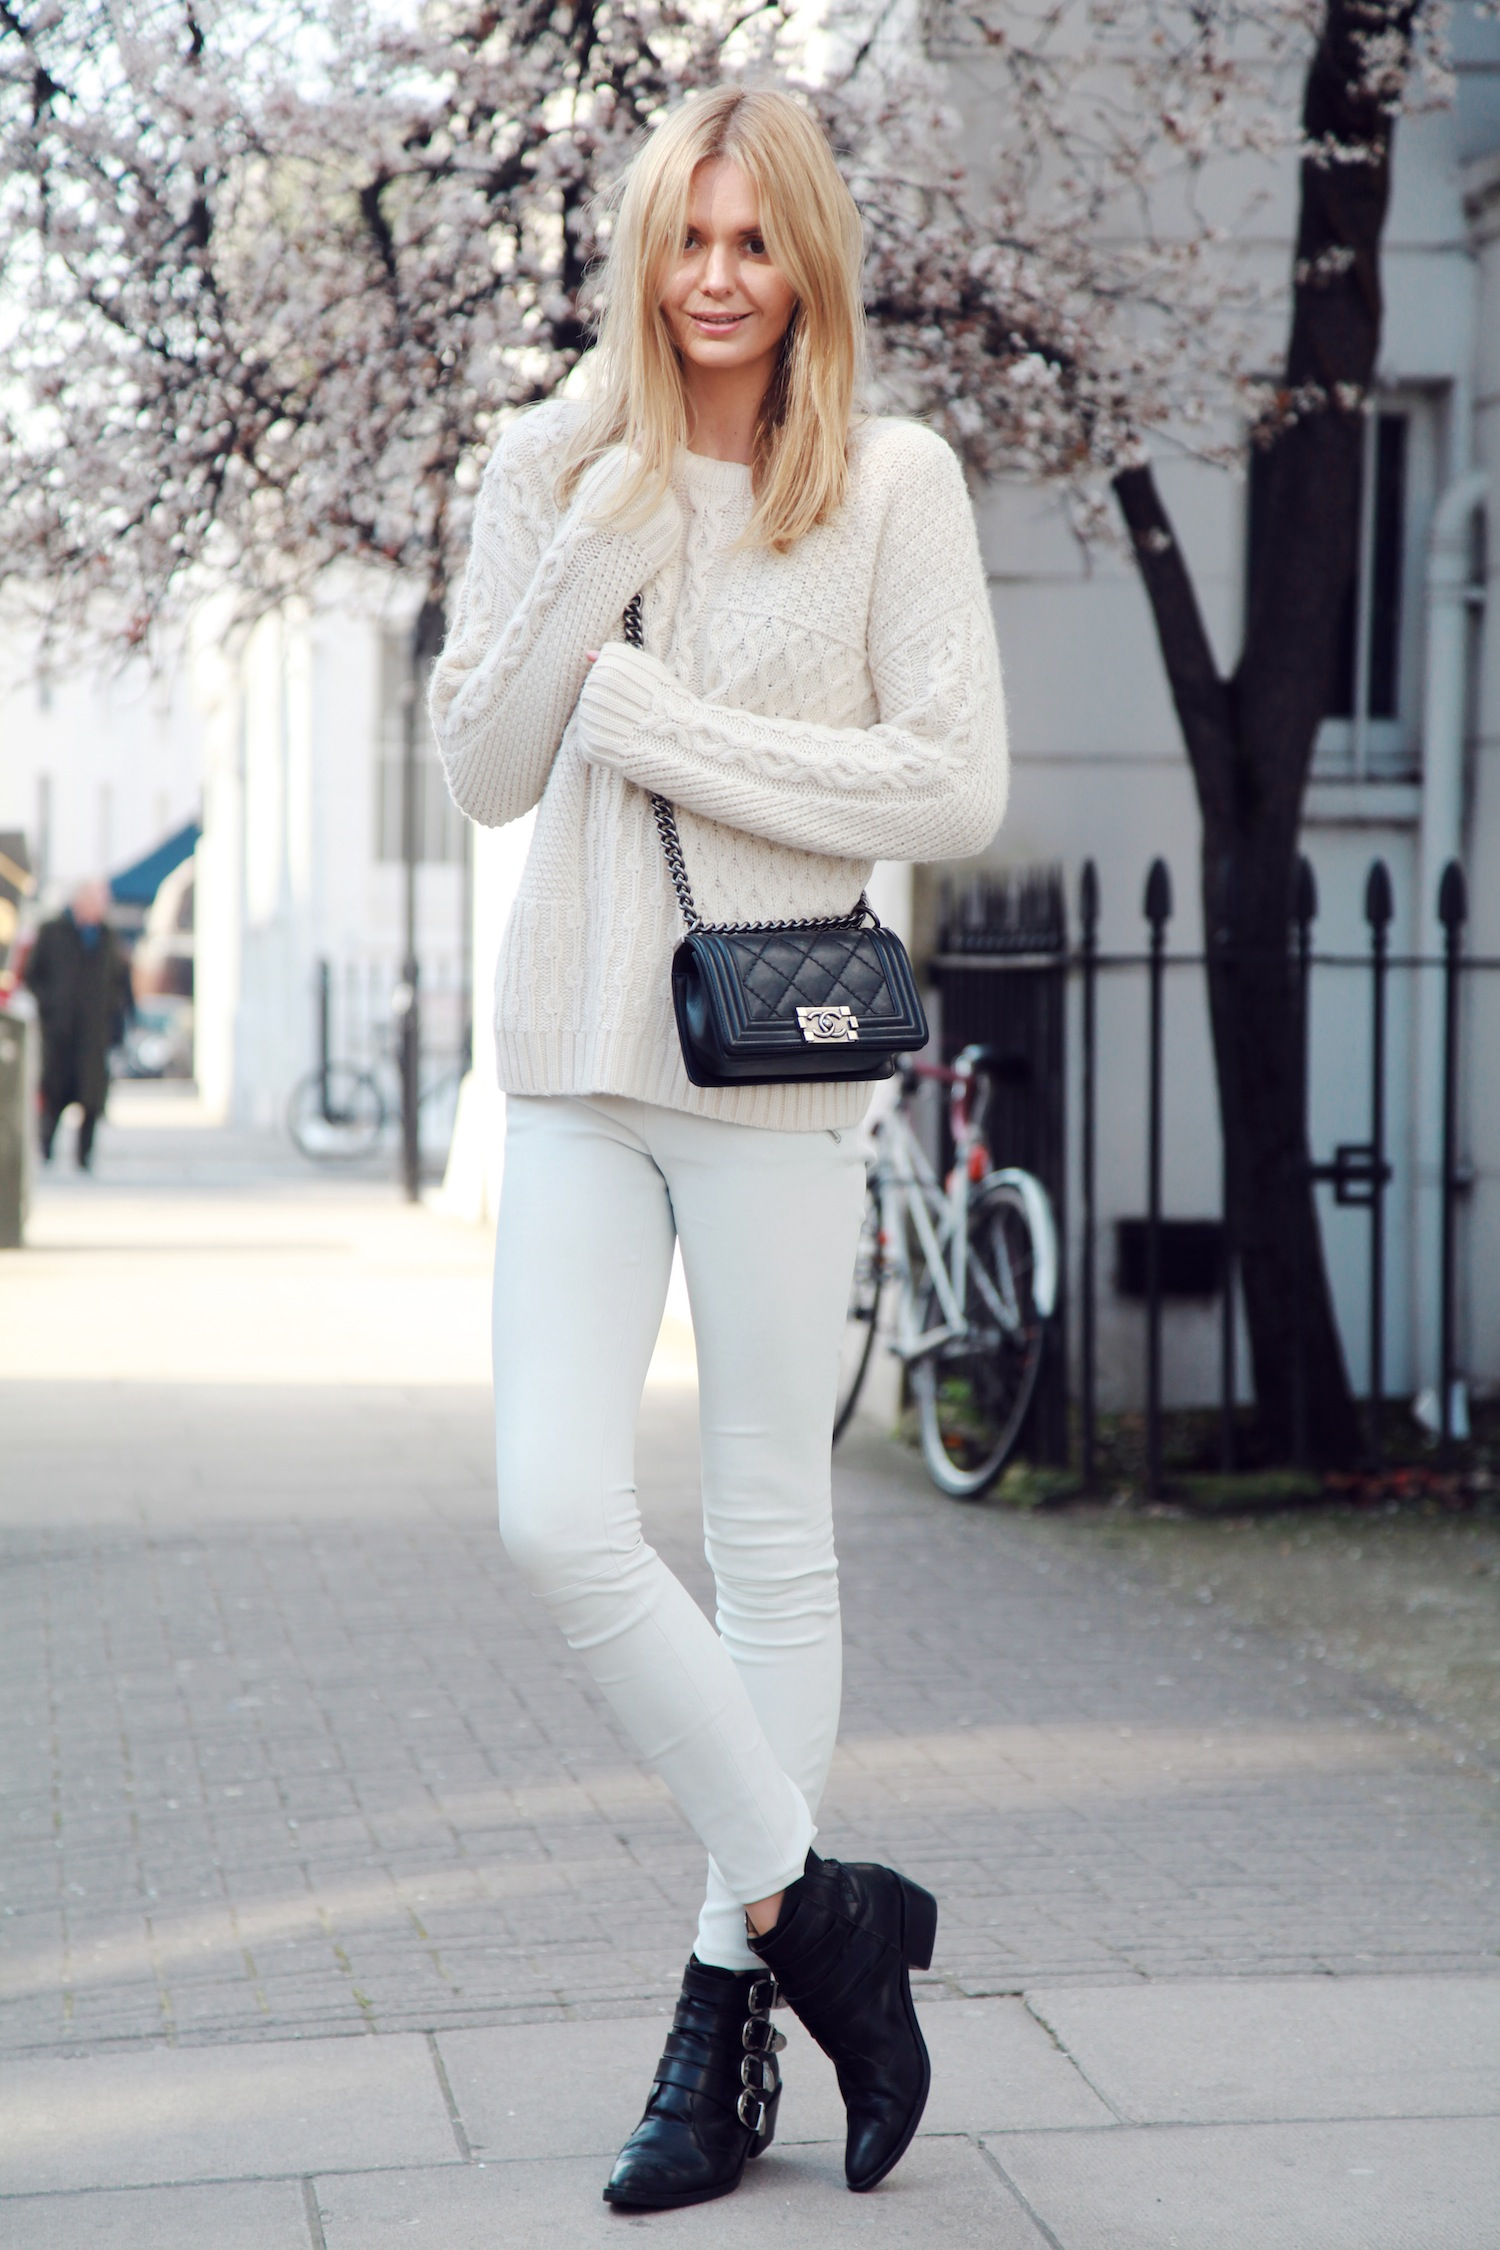 Tuula Vintage Wearing Top From Topshop Knit, Leather Pants From J Brand, Boots From Toga and Bag From Chanel